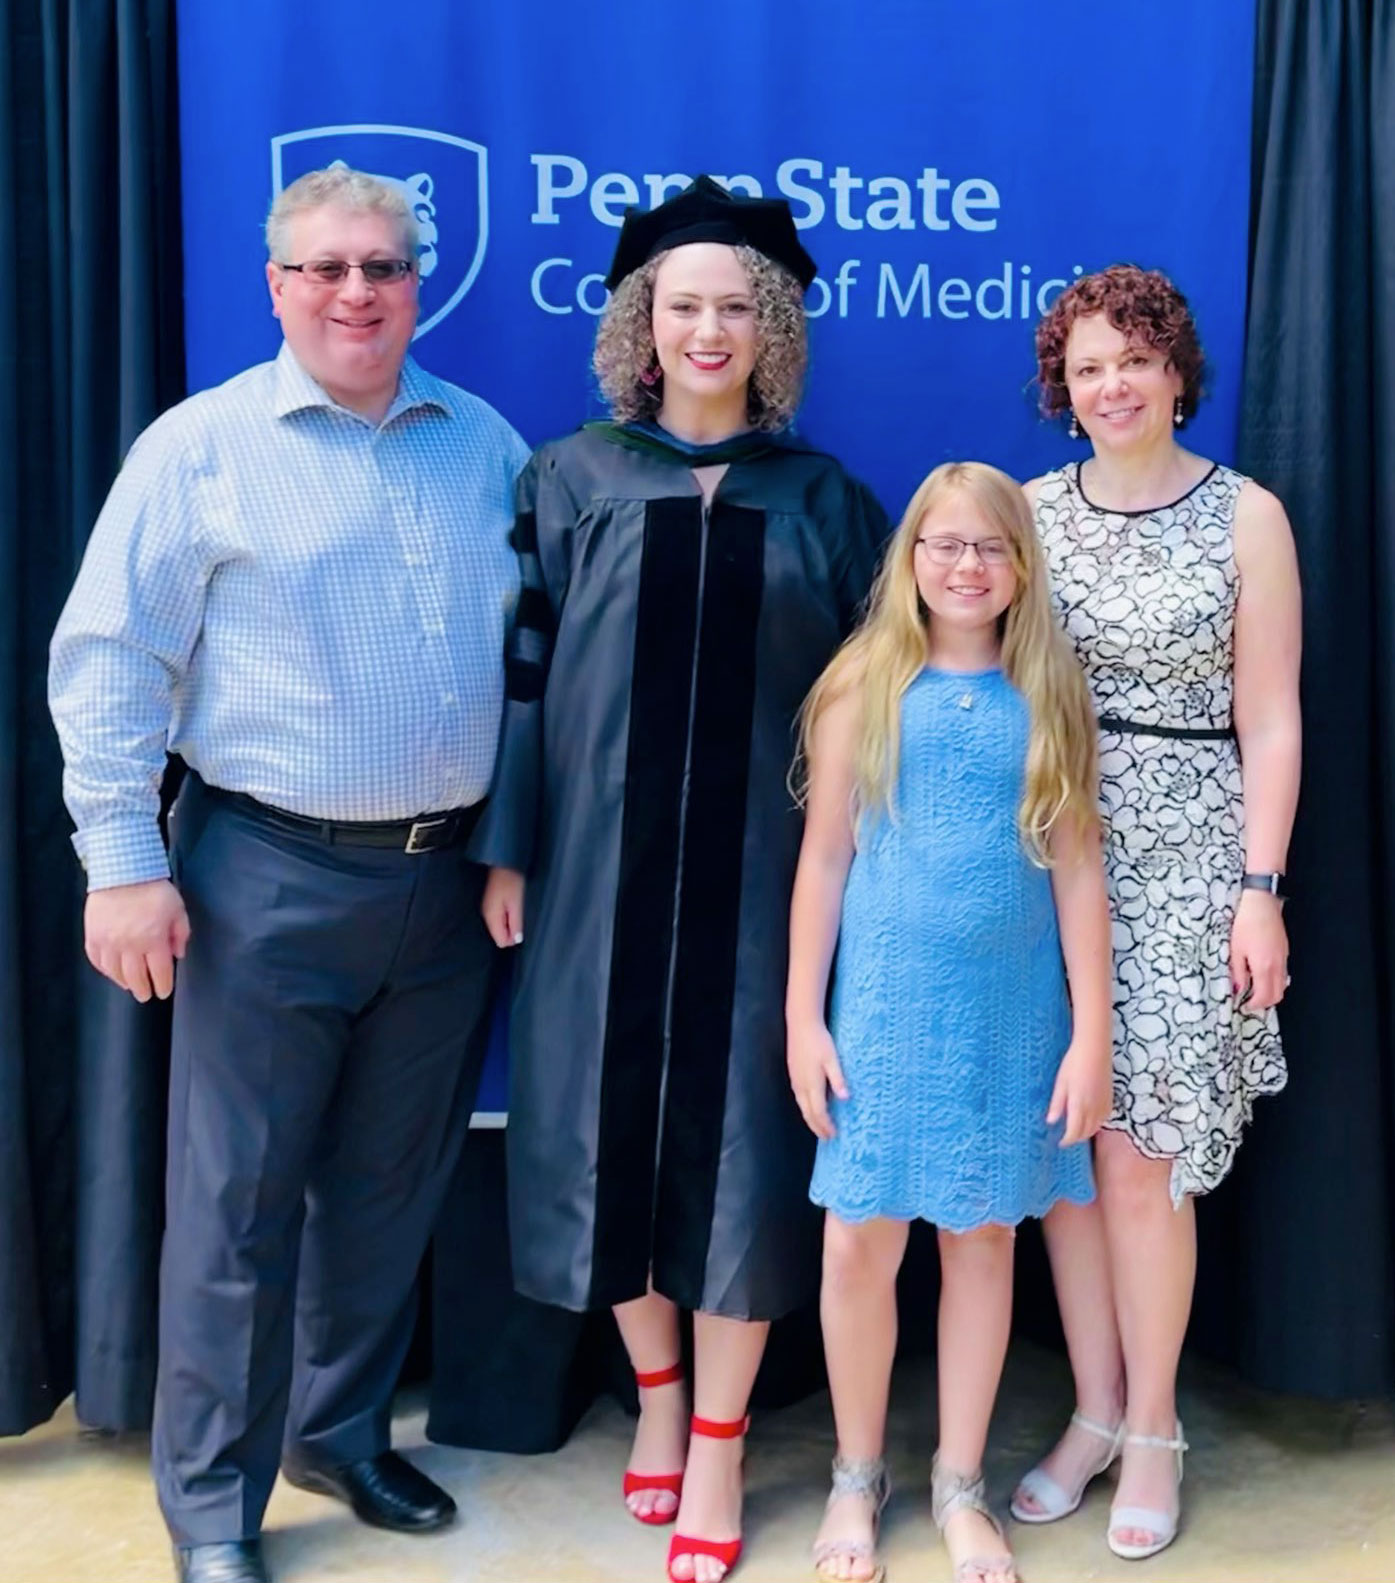 Sarah Erlikh stands with 3 other people in front of a Penn State College of Medicine banner wearing graduation regalia.